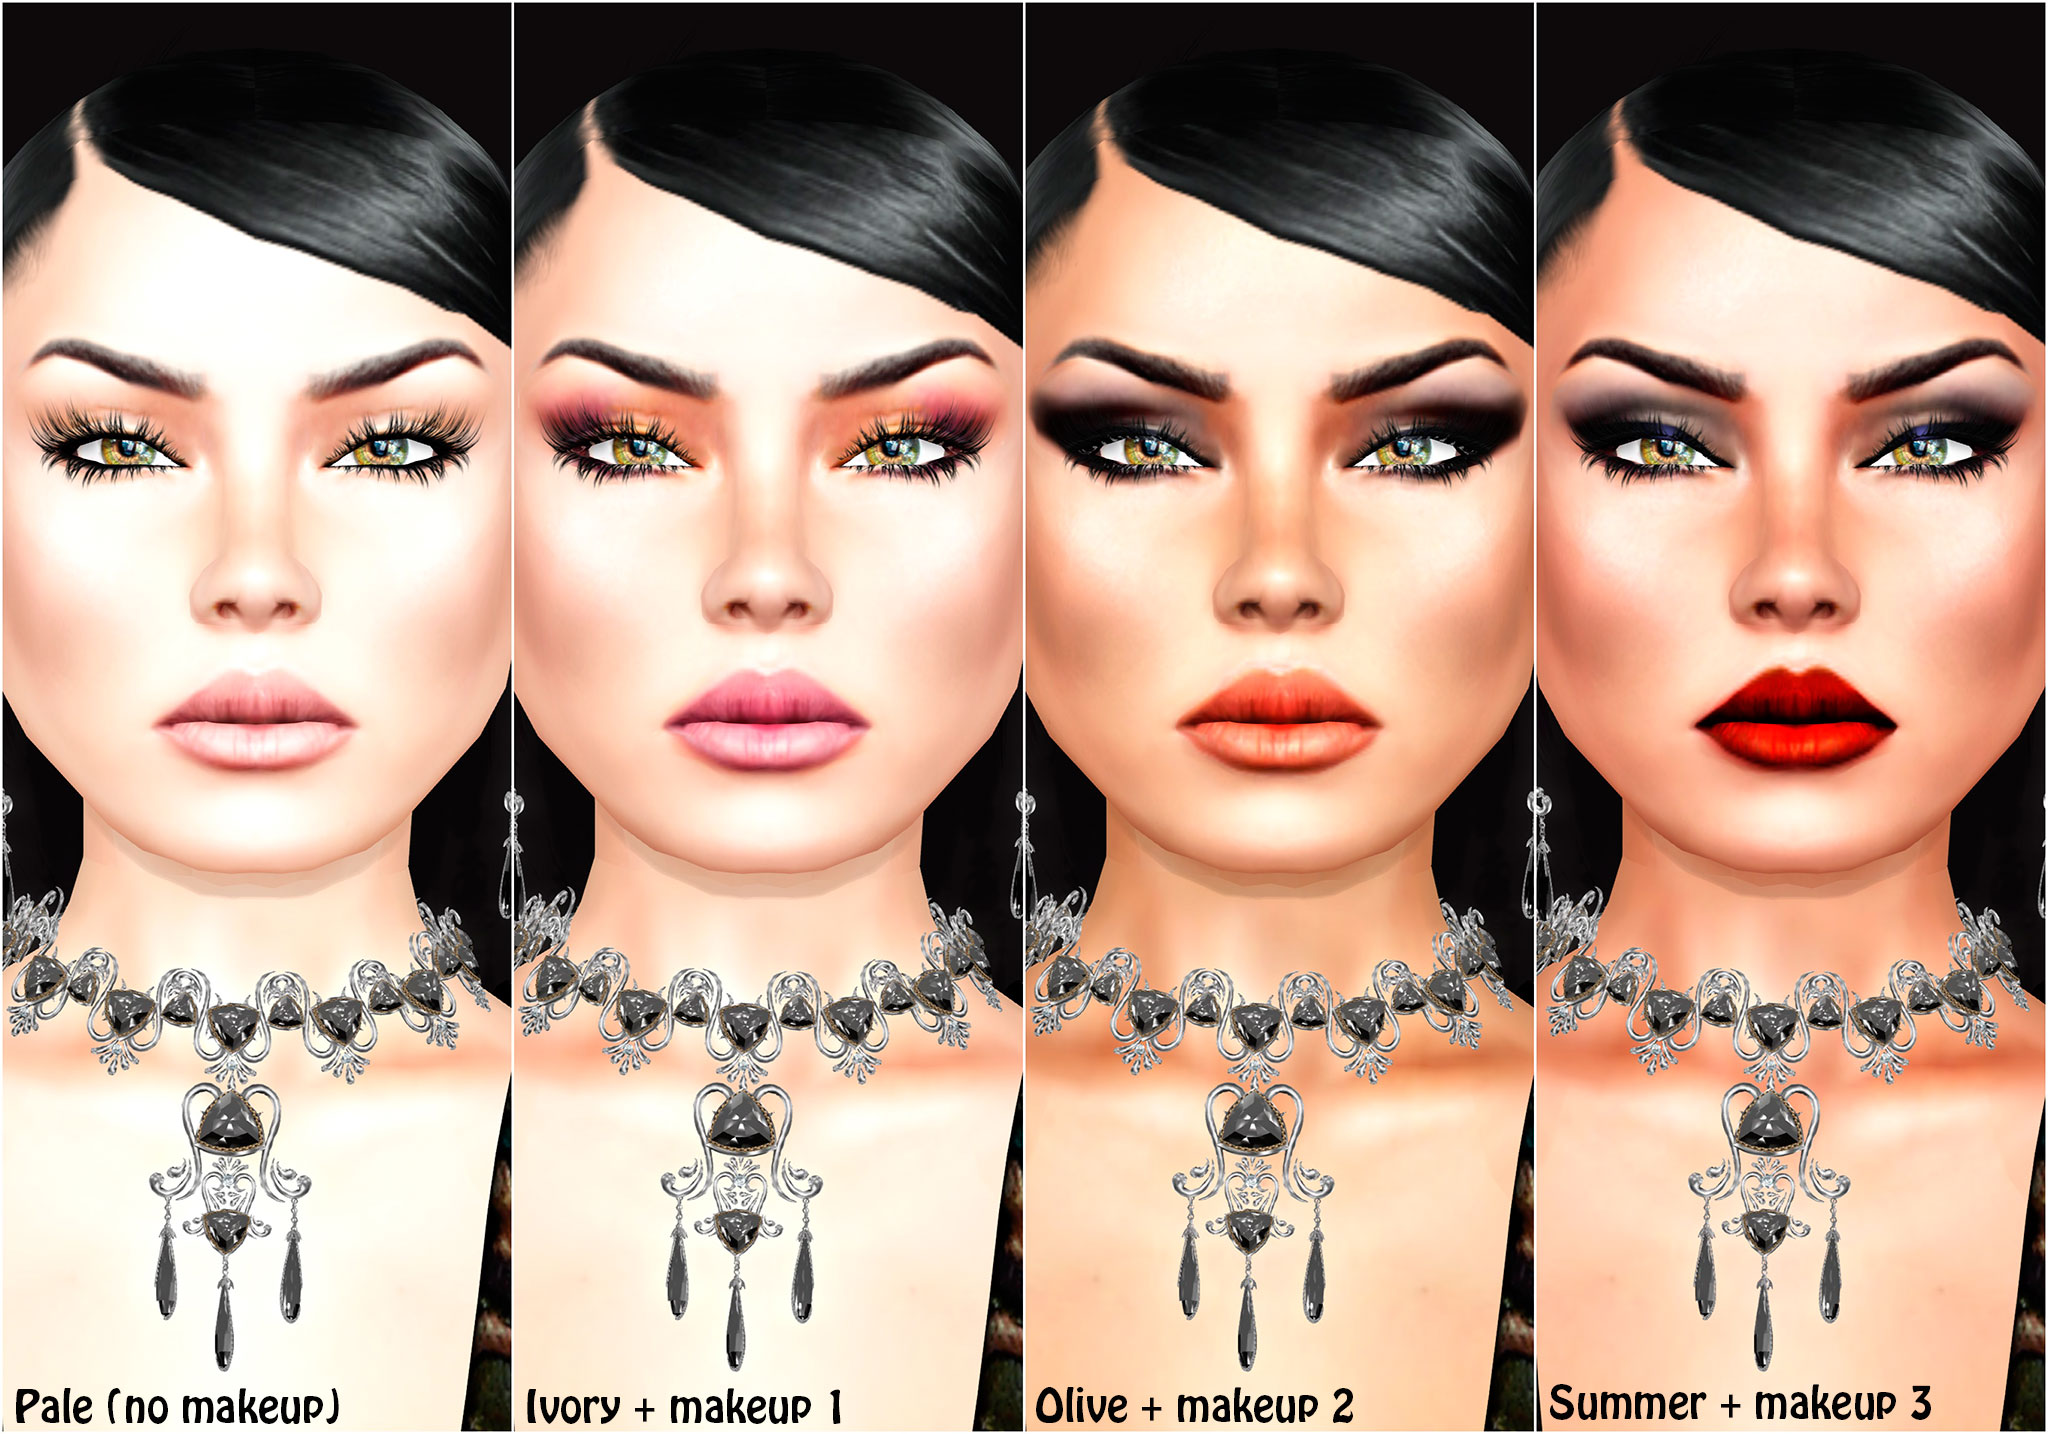 New Faces Lilly for Kustom9